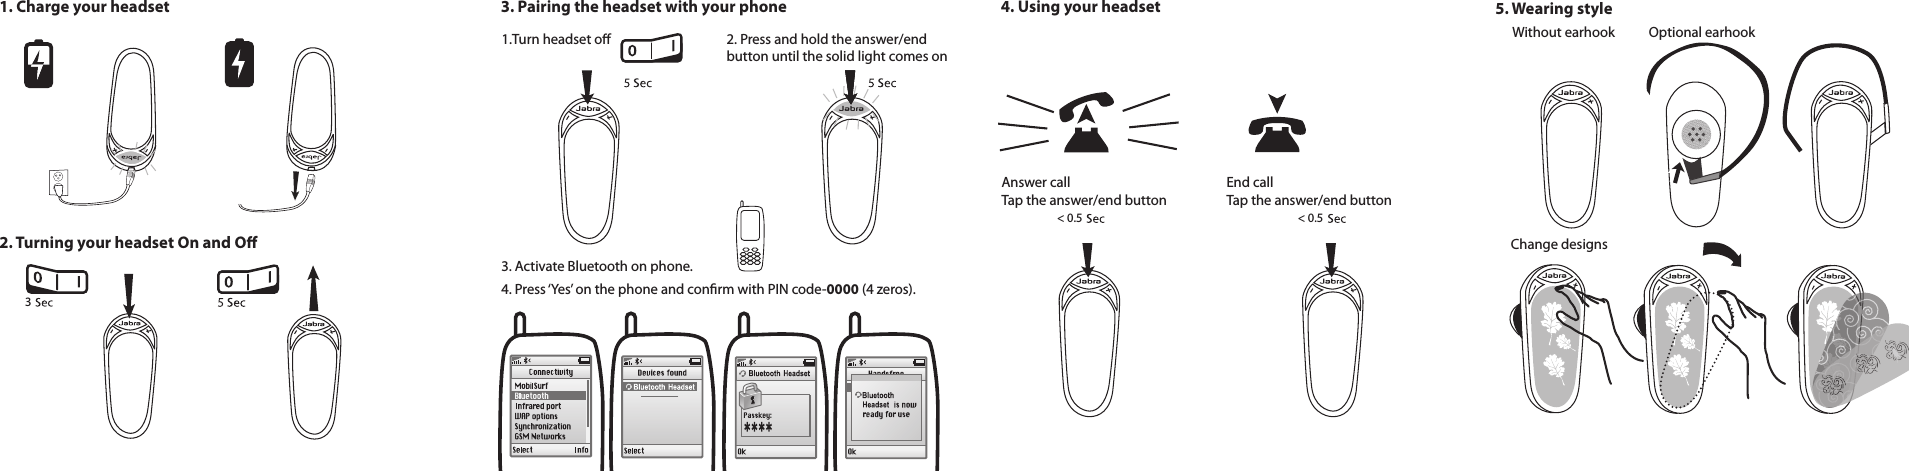 Jabra Ote1 Bluetooth Headset User Manual 2 Details For Fcc Id Bce Ote1 Made By Gn Netcom Inc Document Includes User Man User Manual Bluetooth Headset Headset